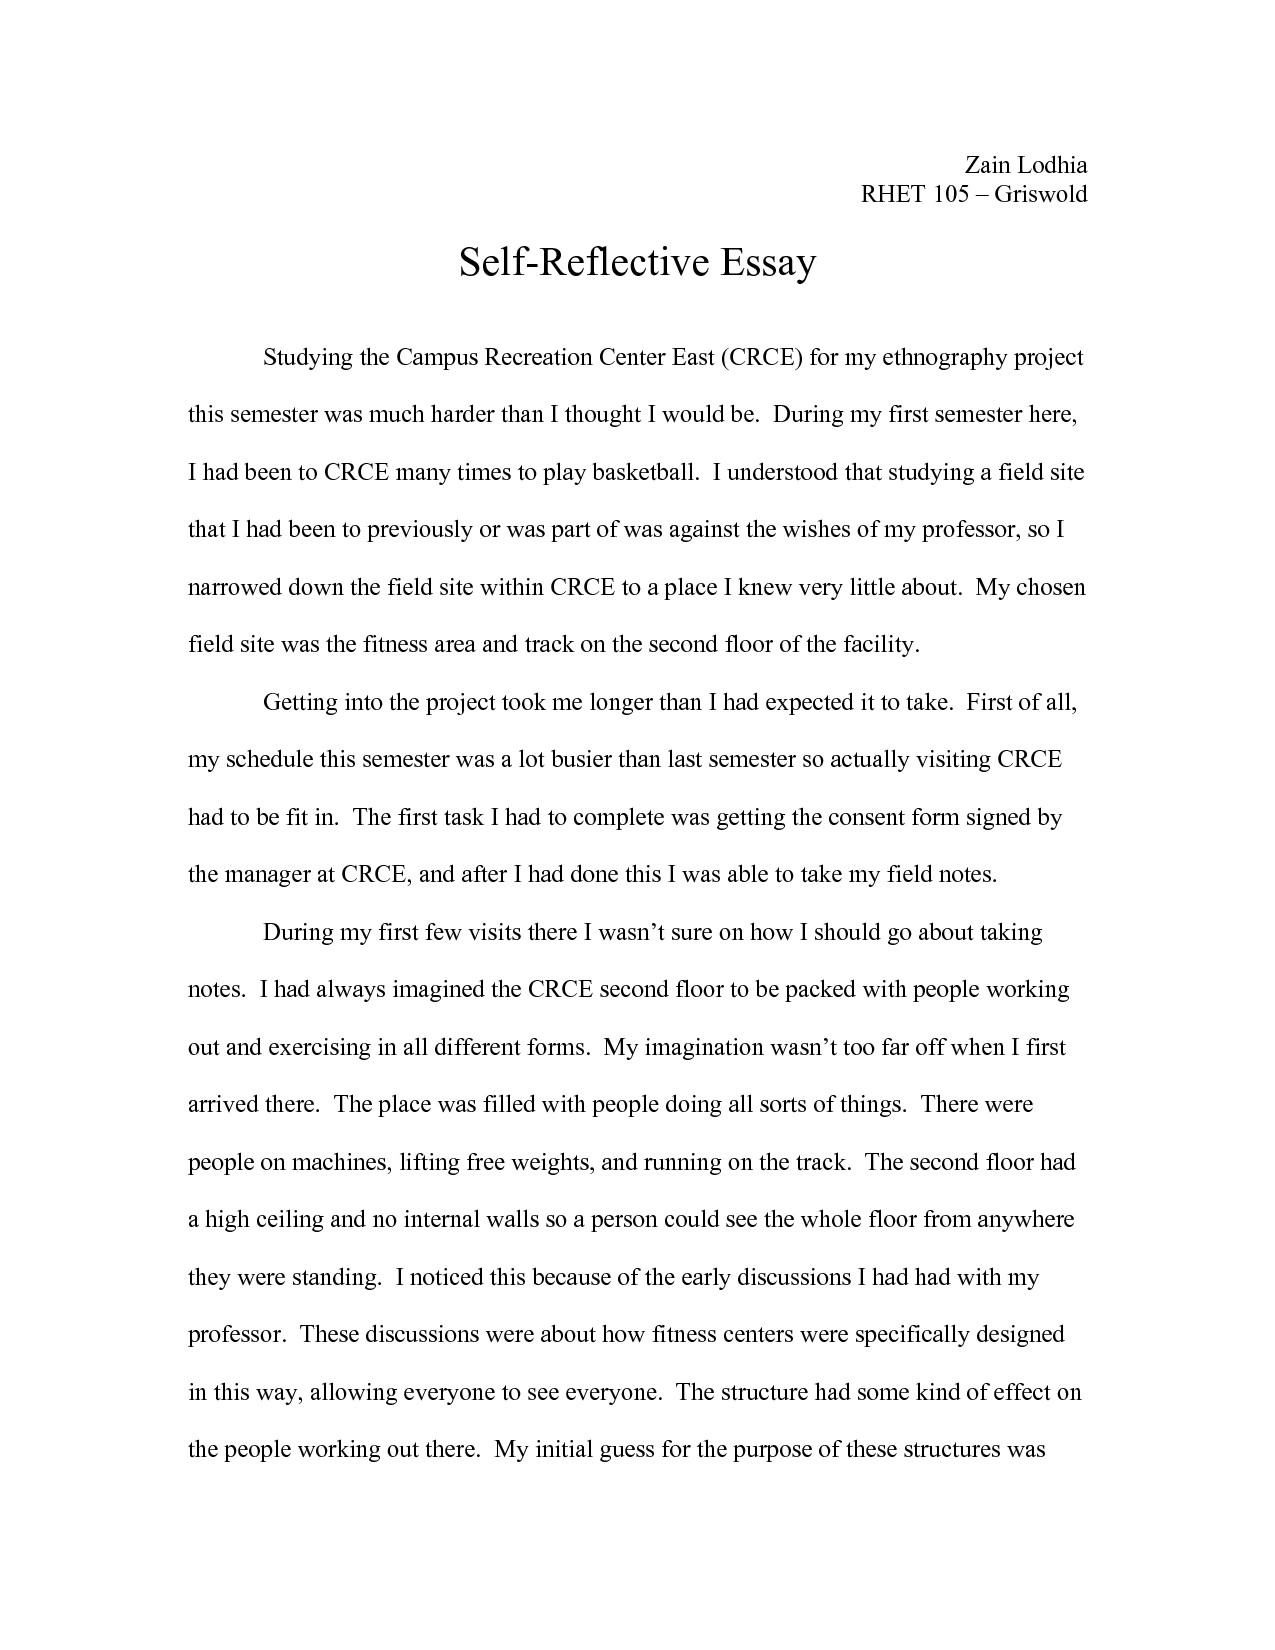 001 Essay Example Reflective Introduction Samples Of Essays How To Start Surprising A Do You An Write For Full